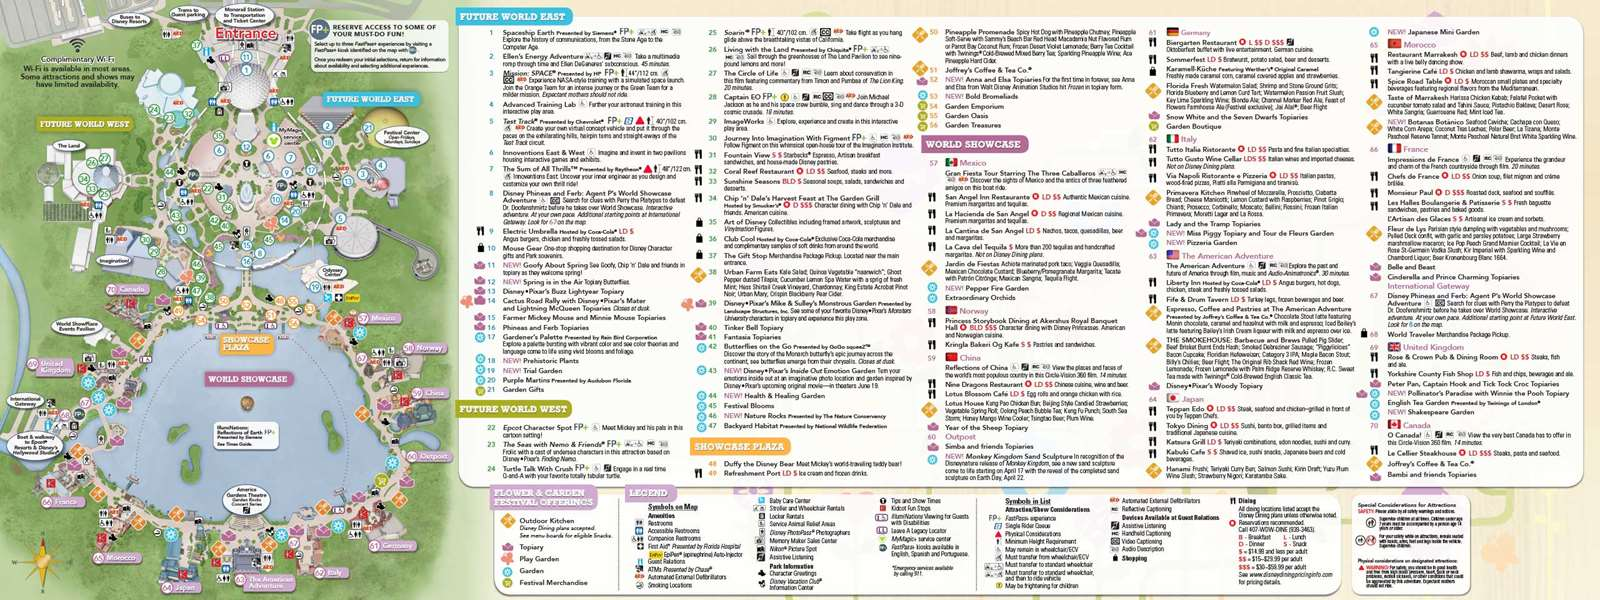 2015 epcot flower and garden festival guide map - photo 2 of 2